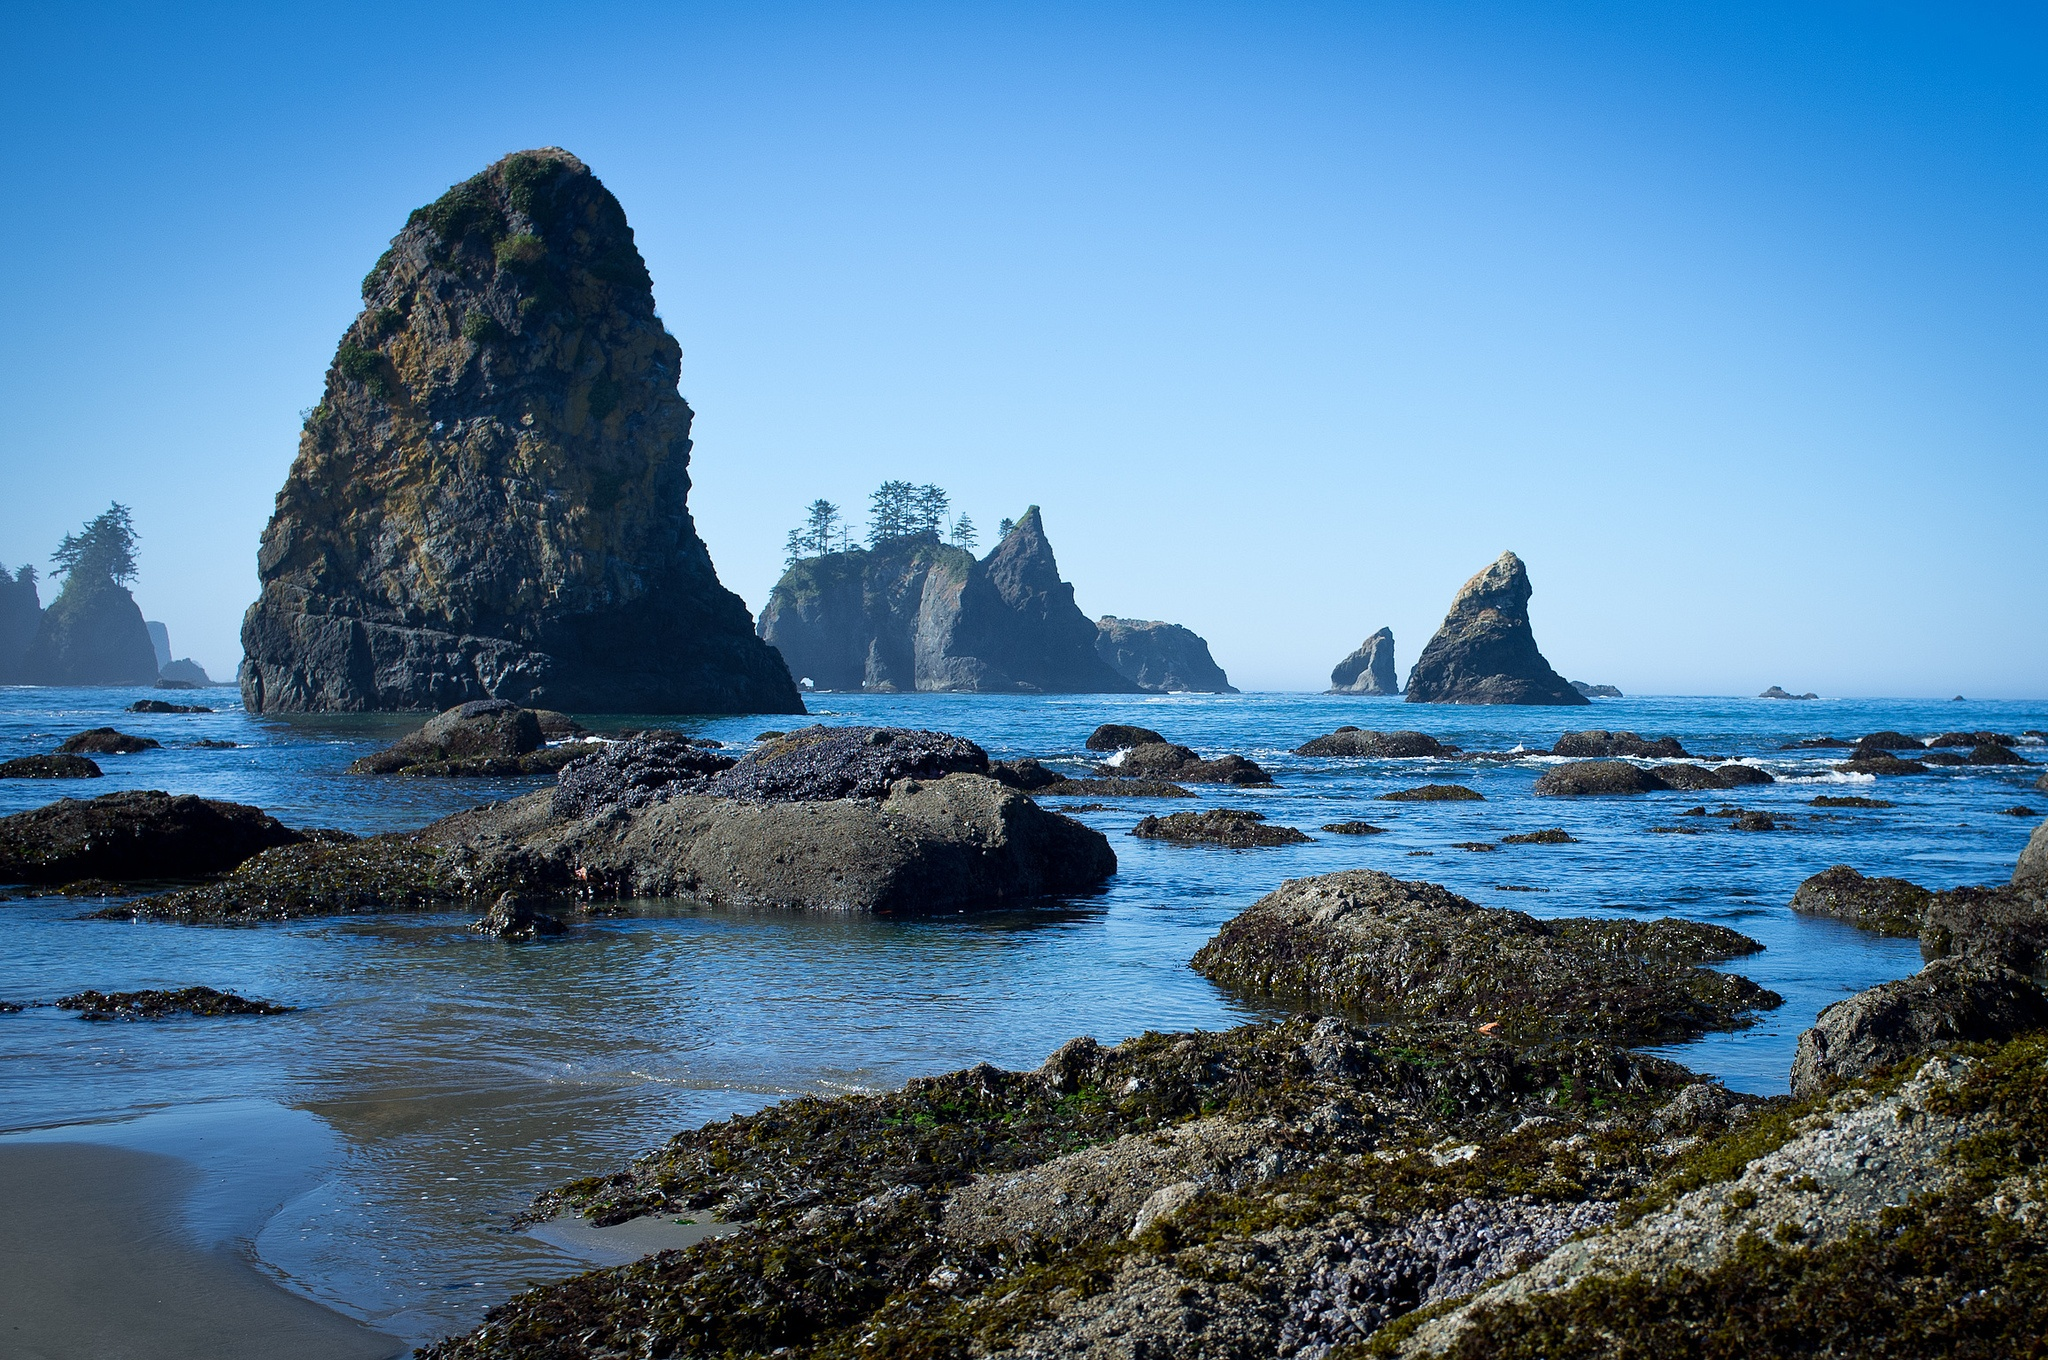 While not tropical, Washington has some really nice beaches - shi shi beach olympic peninsula washington road trip